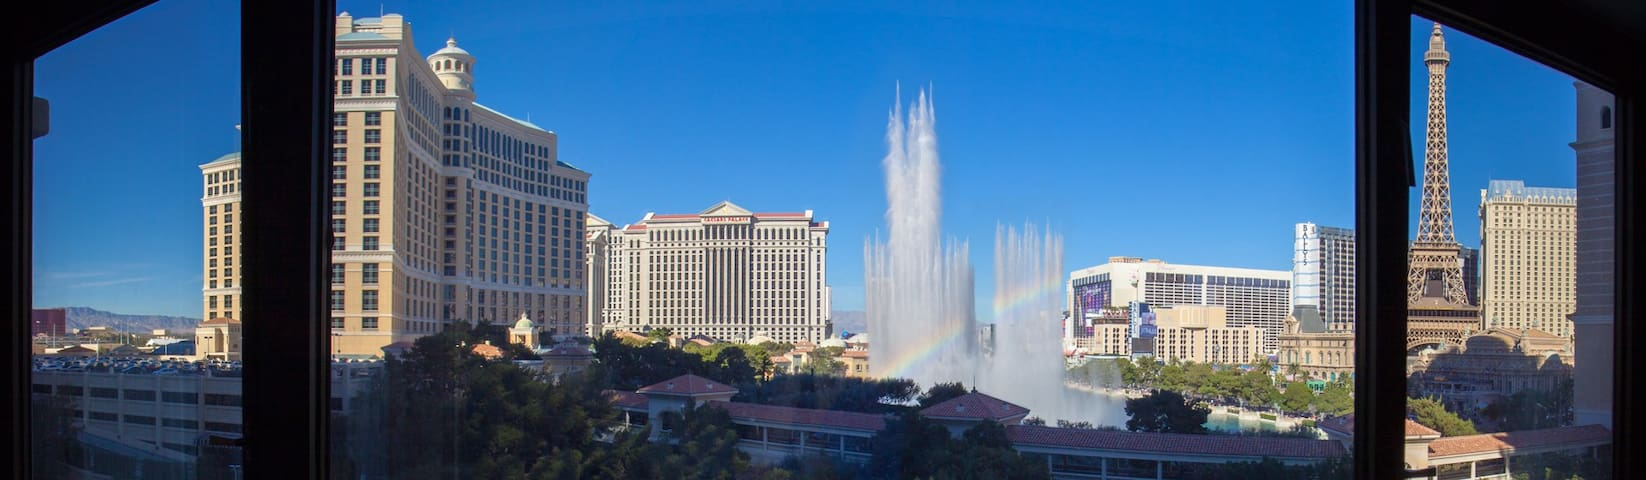 1BD ON STRIP/Panoramic View of Bellagio Fountains